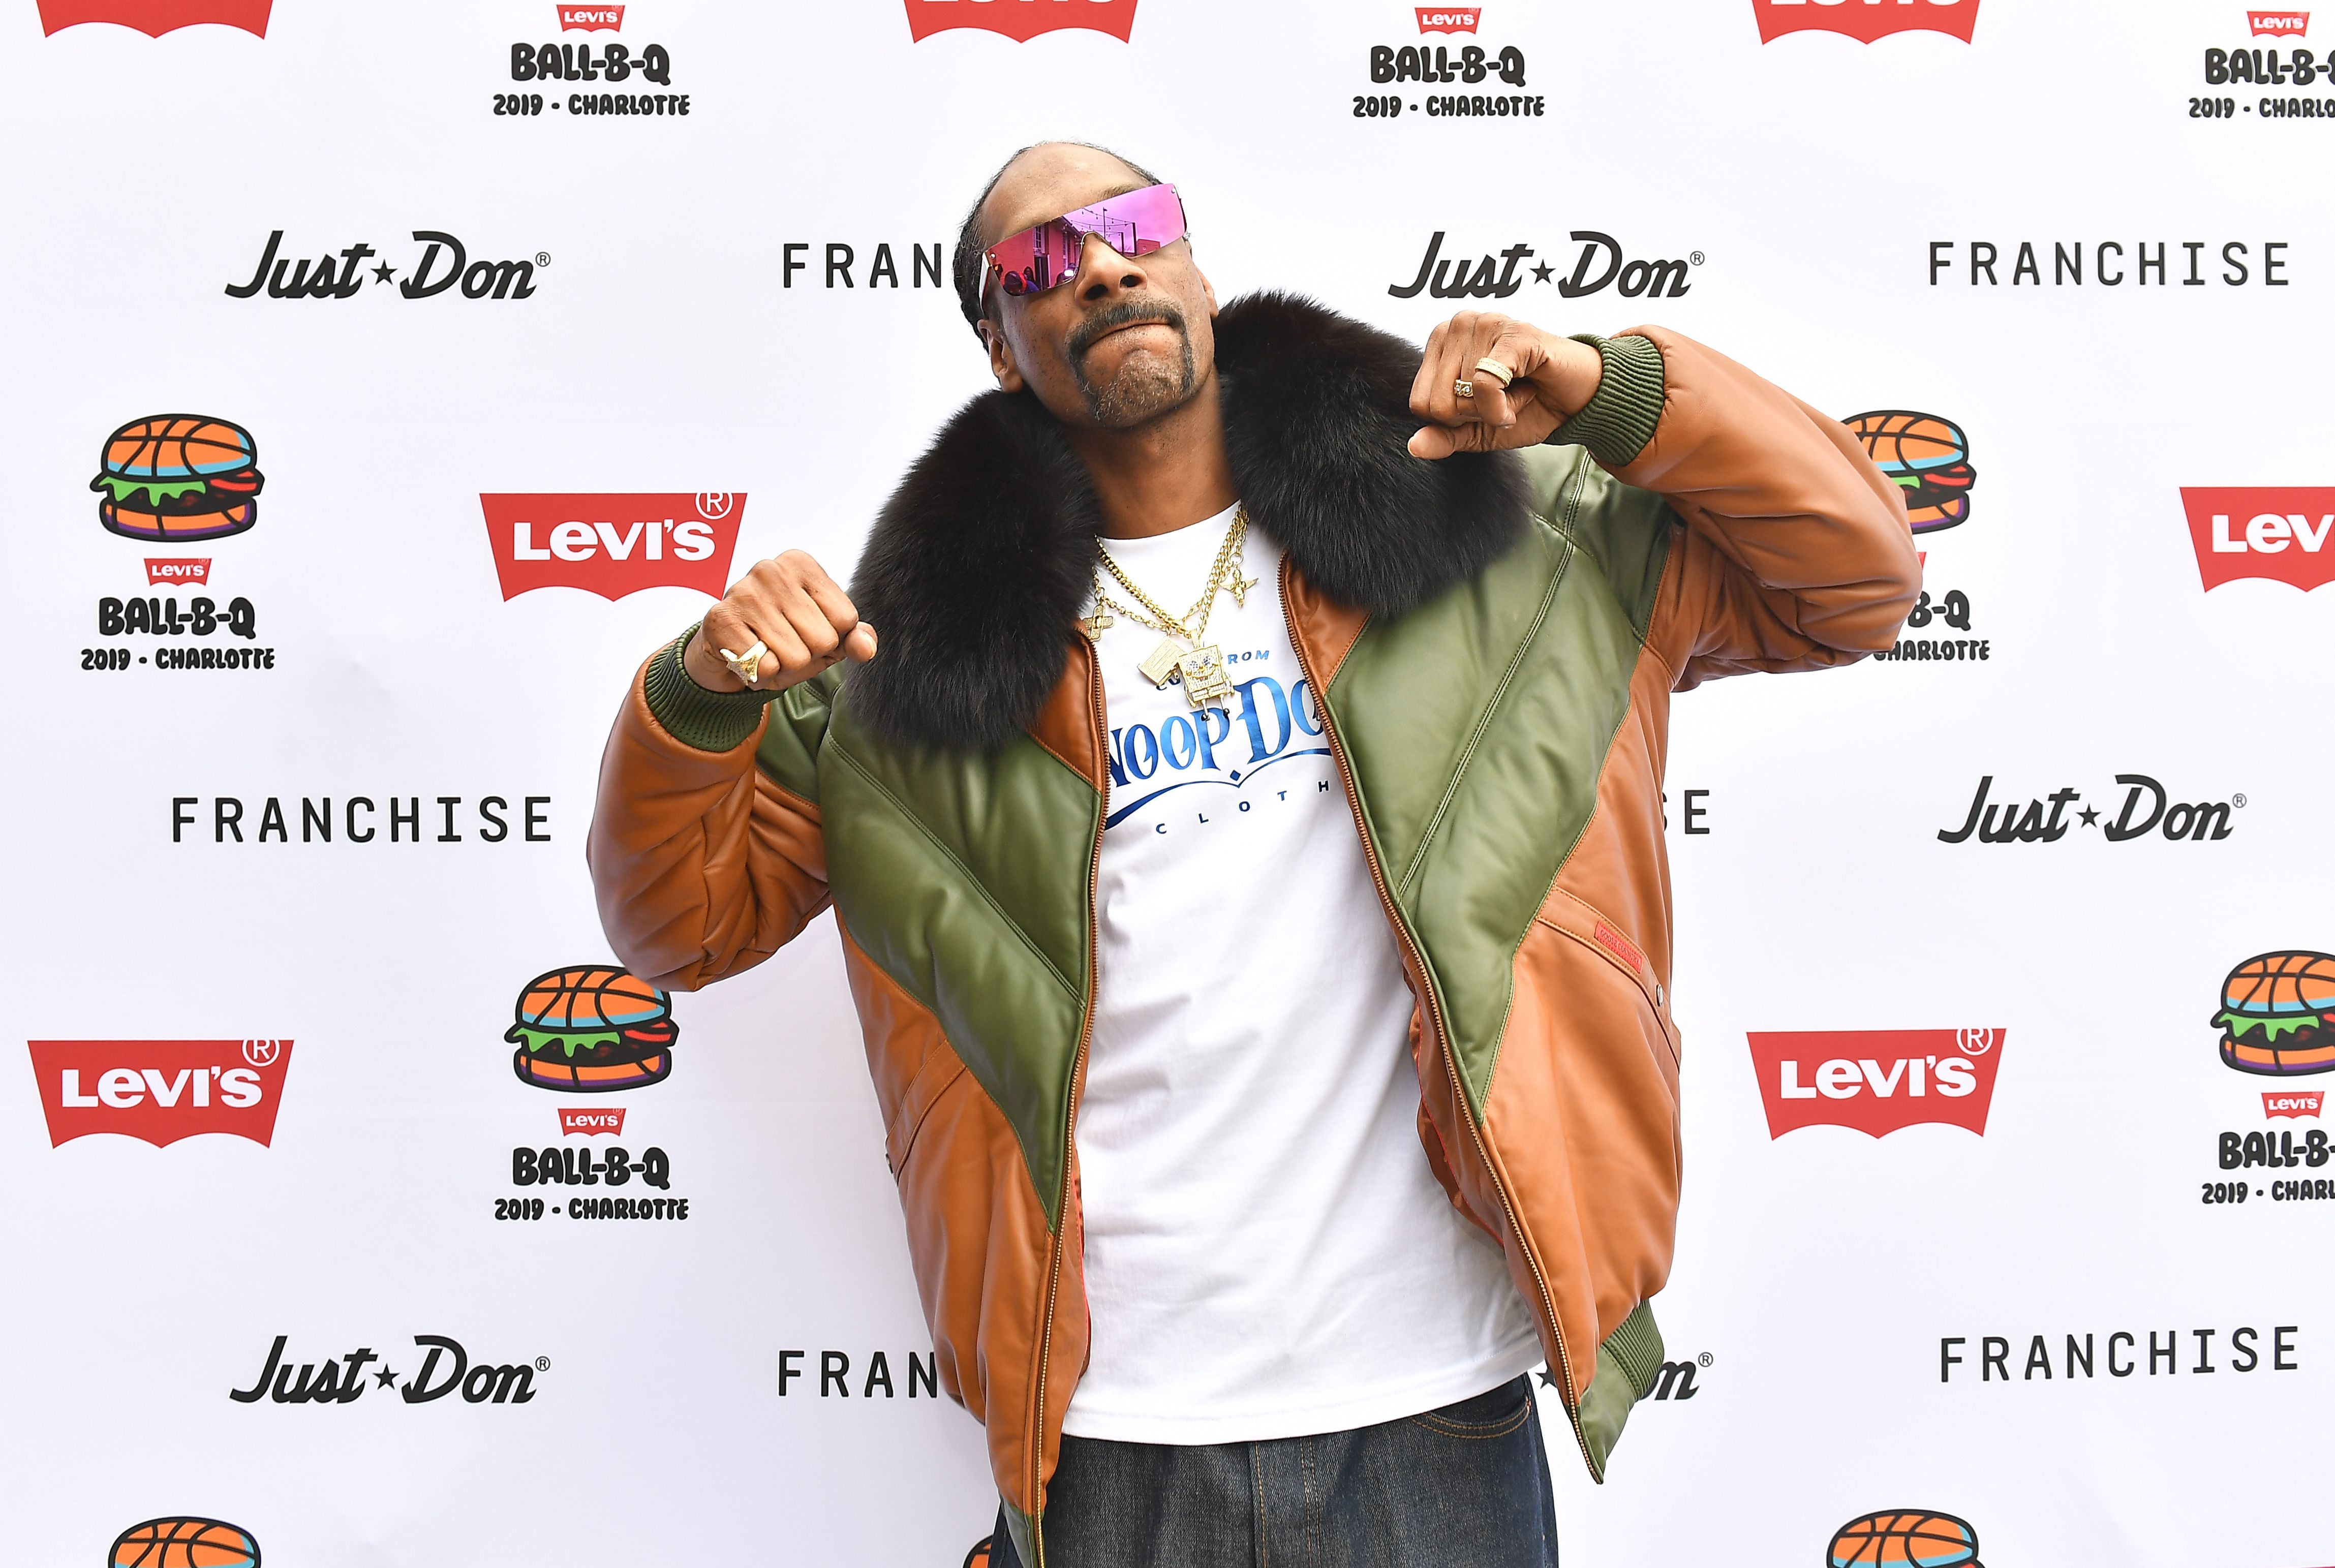 Snoop Dog at Levi's All-Star Weekend Ball-B-Q With Just Don And Snoop Dogg